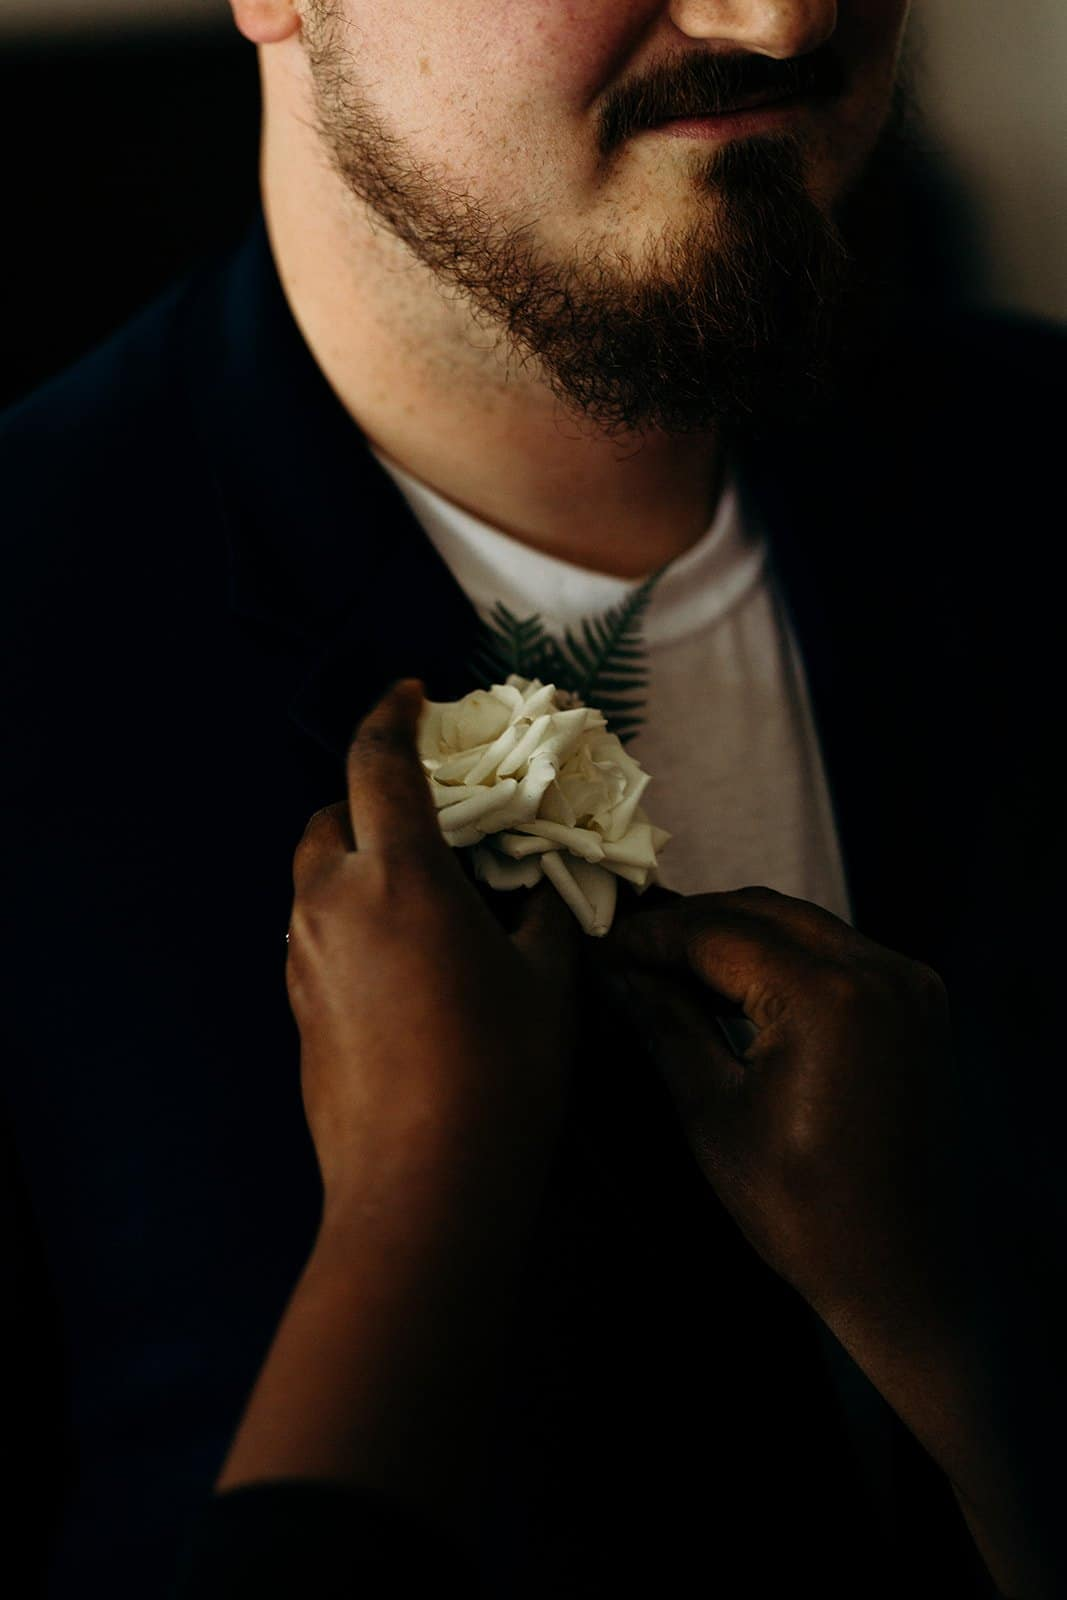 woman pins boutonniere on groom